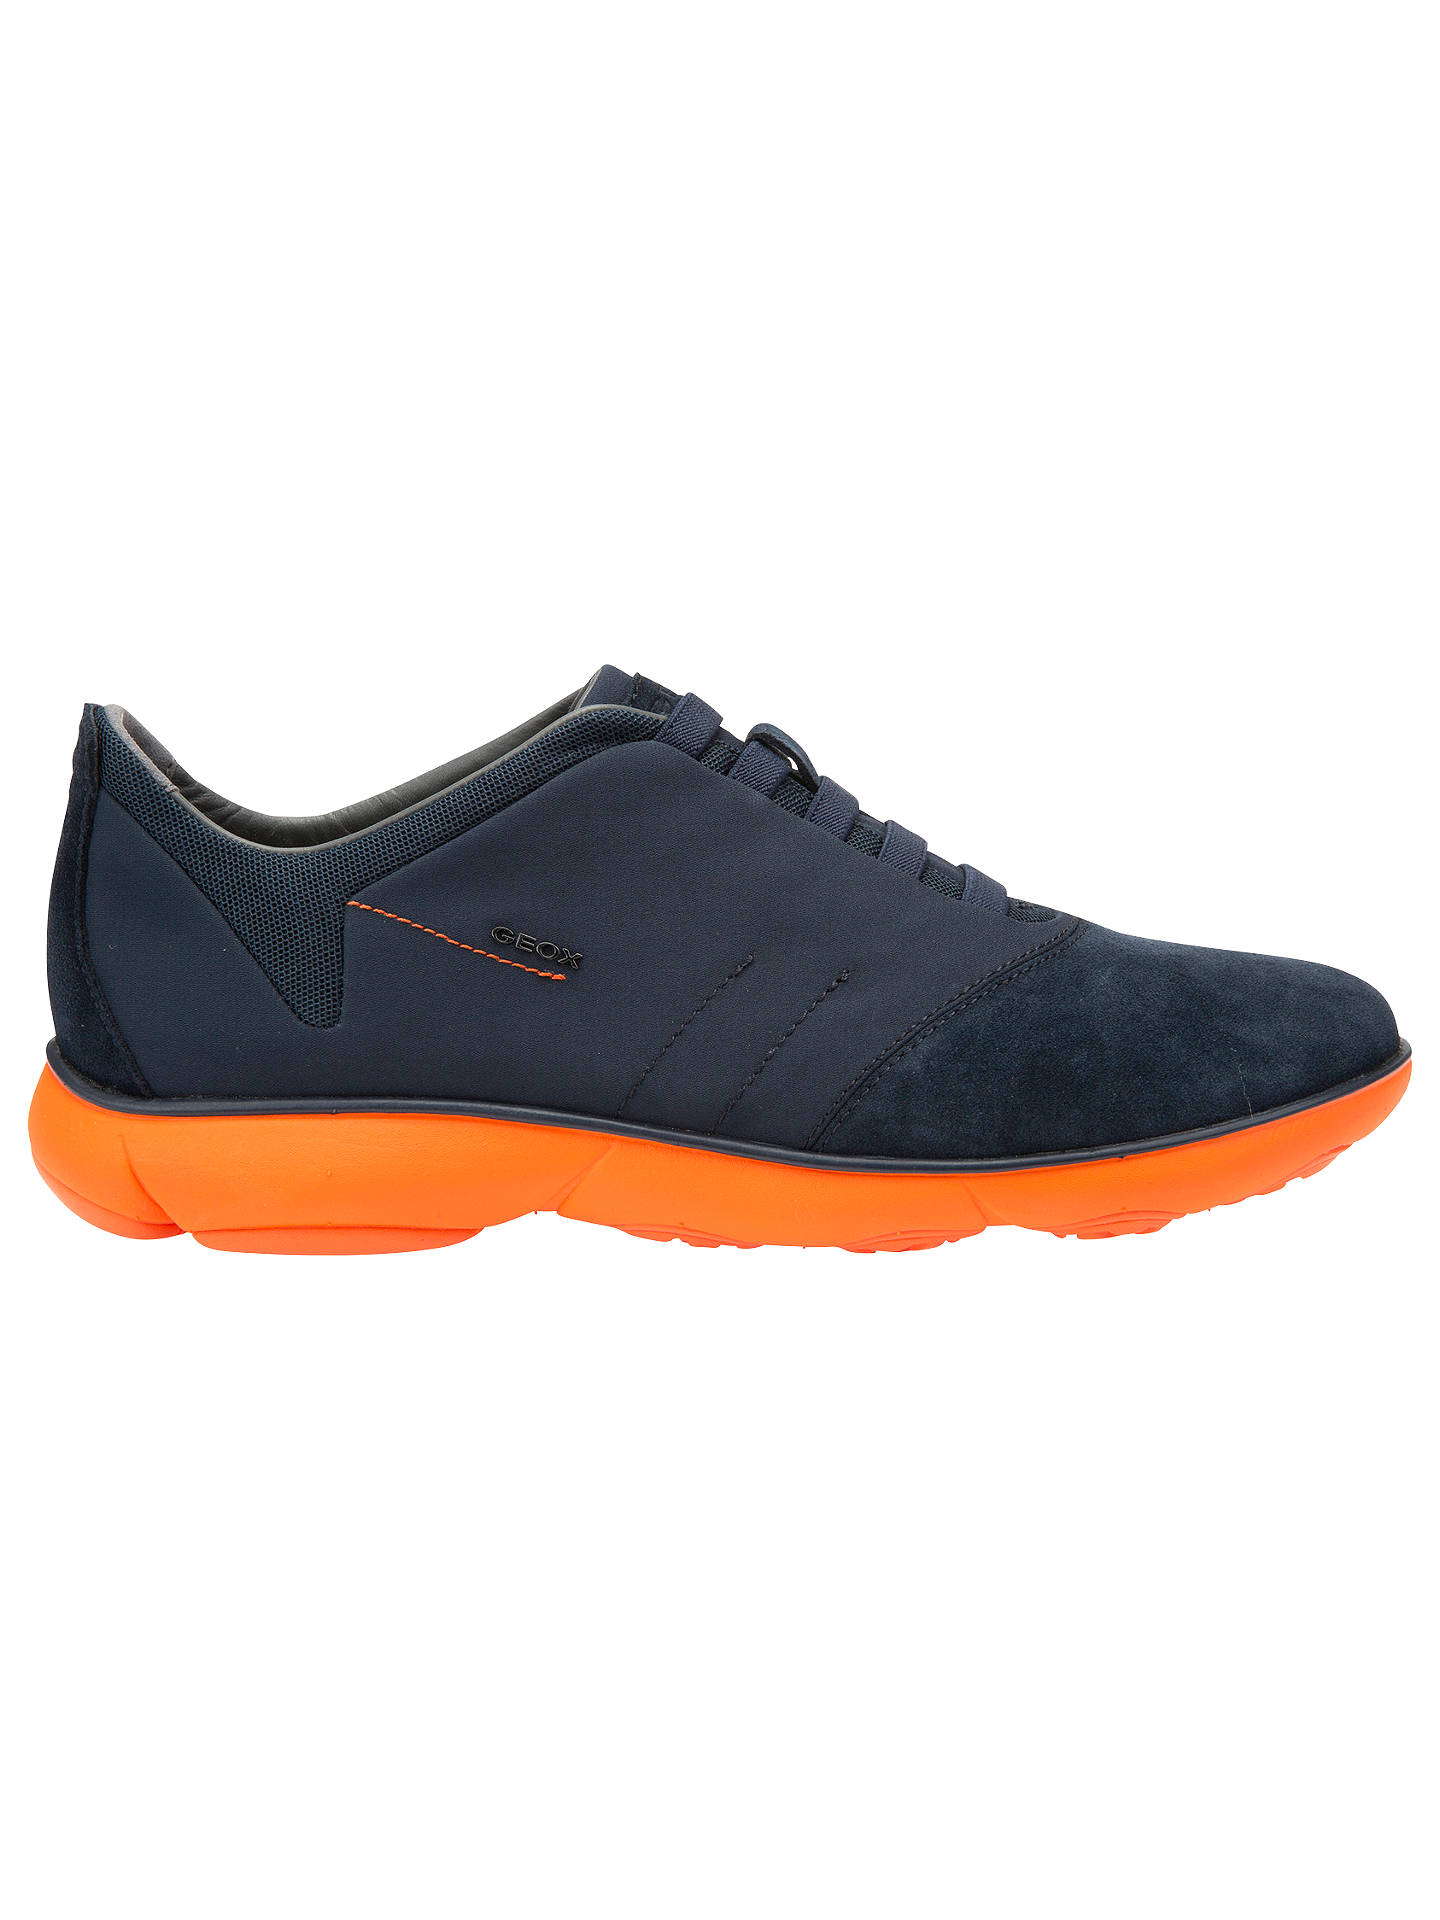 e056e29735 ... Men's Shoes, Boots & Trainers. Previous Image Next Image. Buy Geox  Nebula Trainers, Navy/Orange, 7 Online at johnlewis.com ...